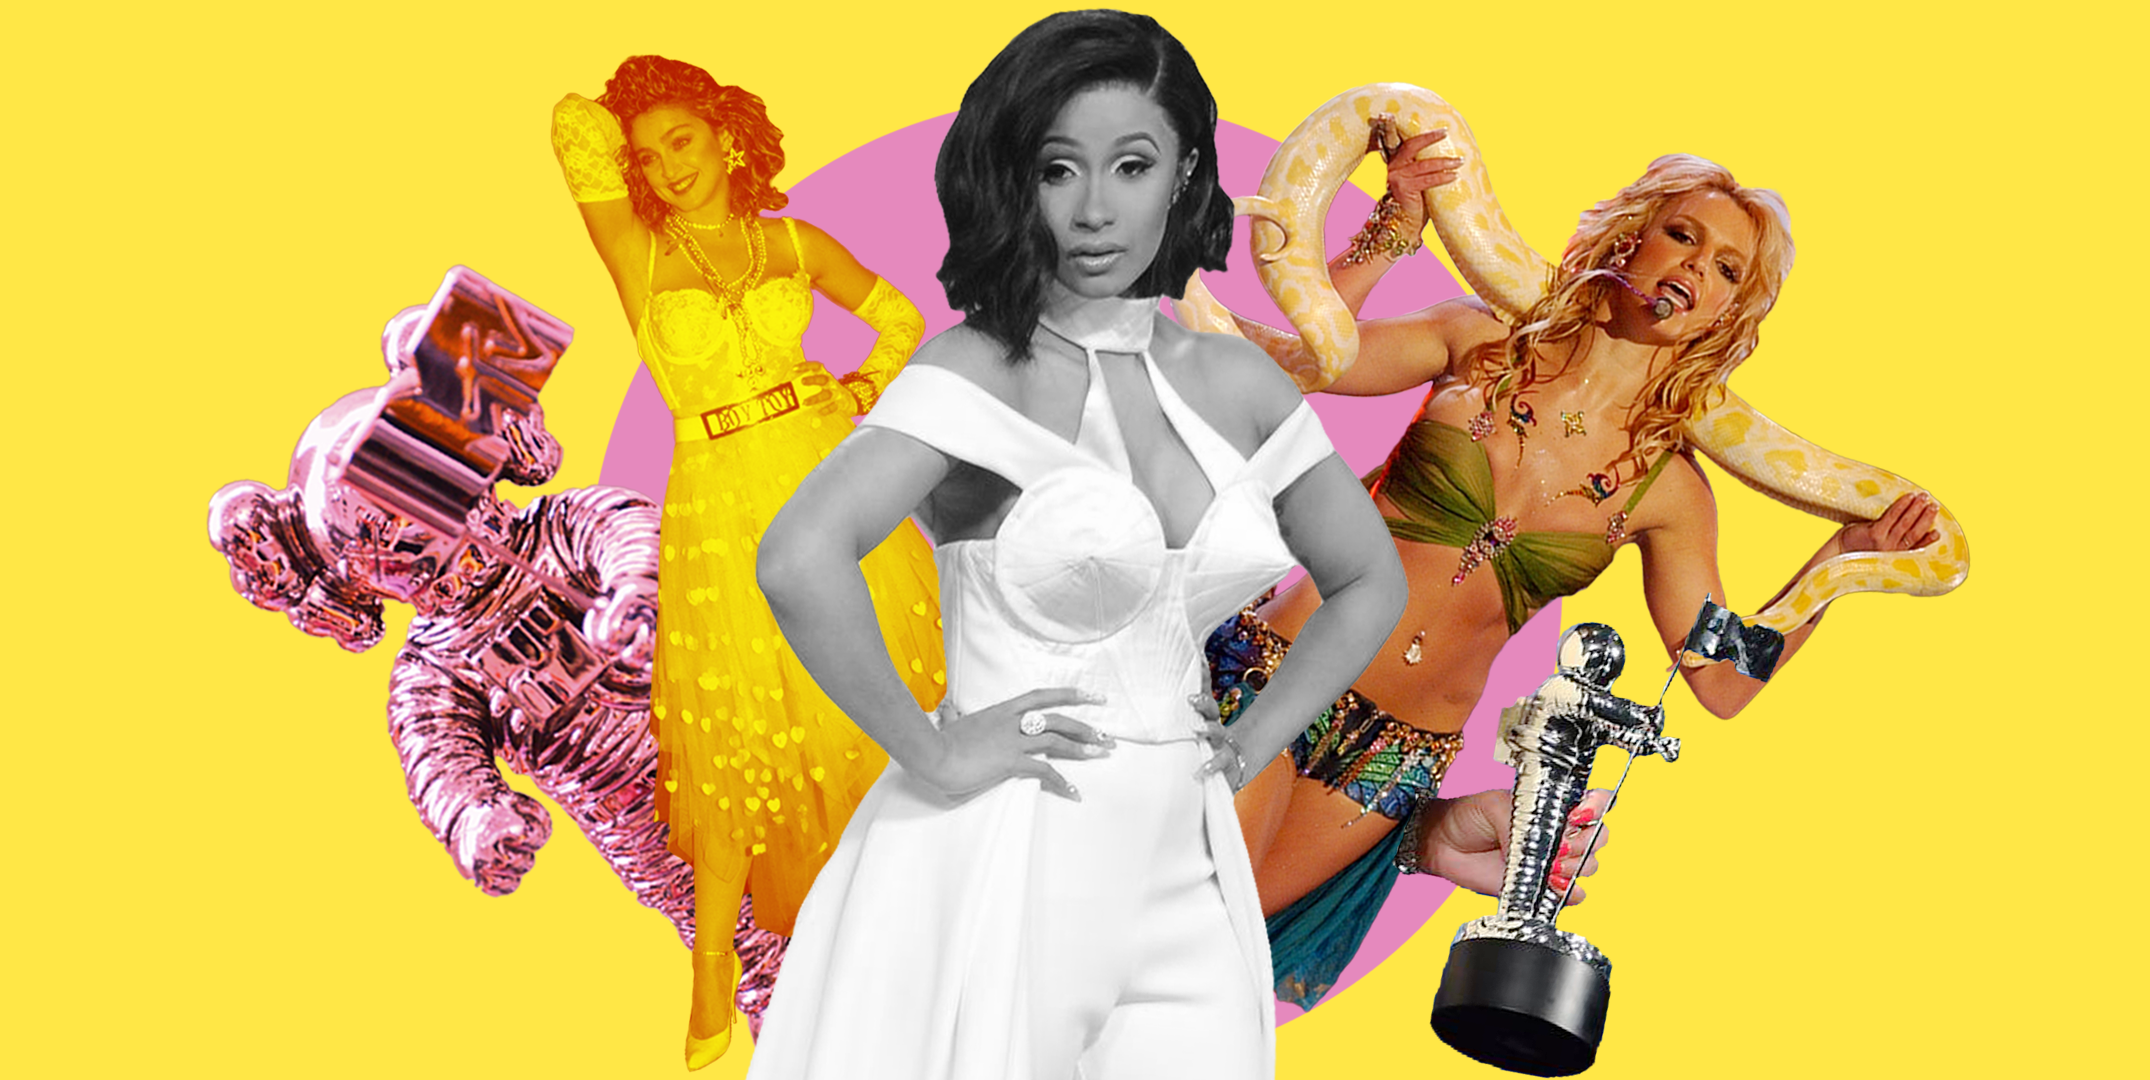 35 of the Most Jaw-Dropping VMAs Look the Year You Were Born